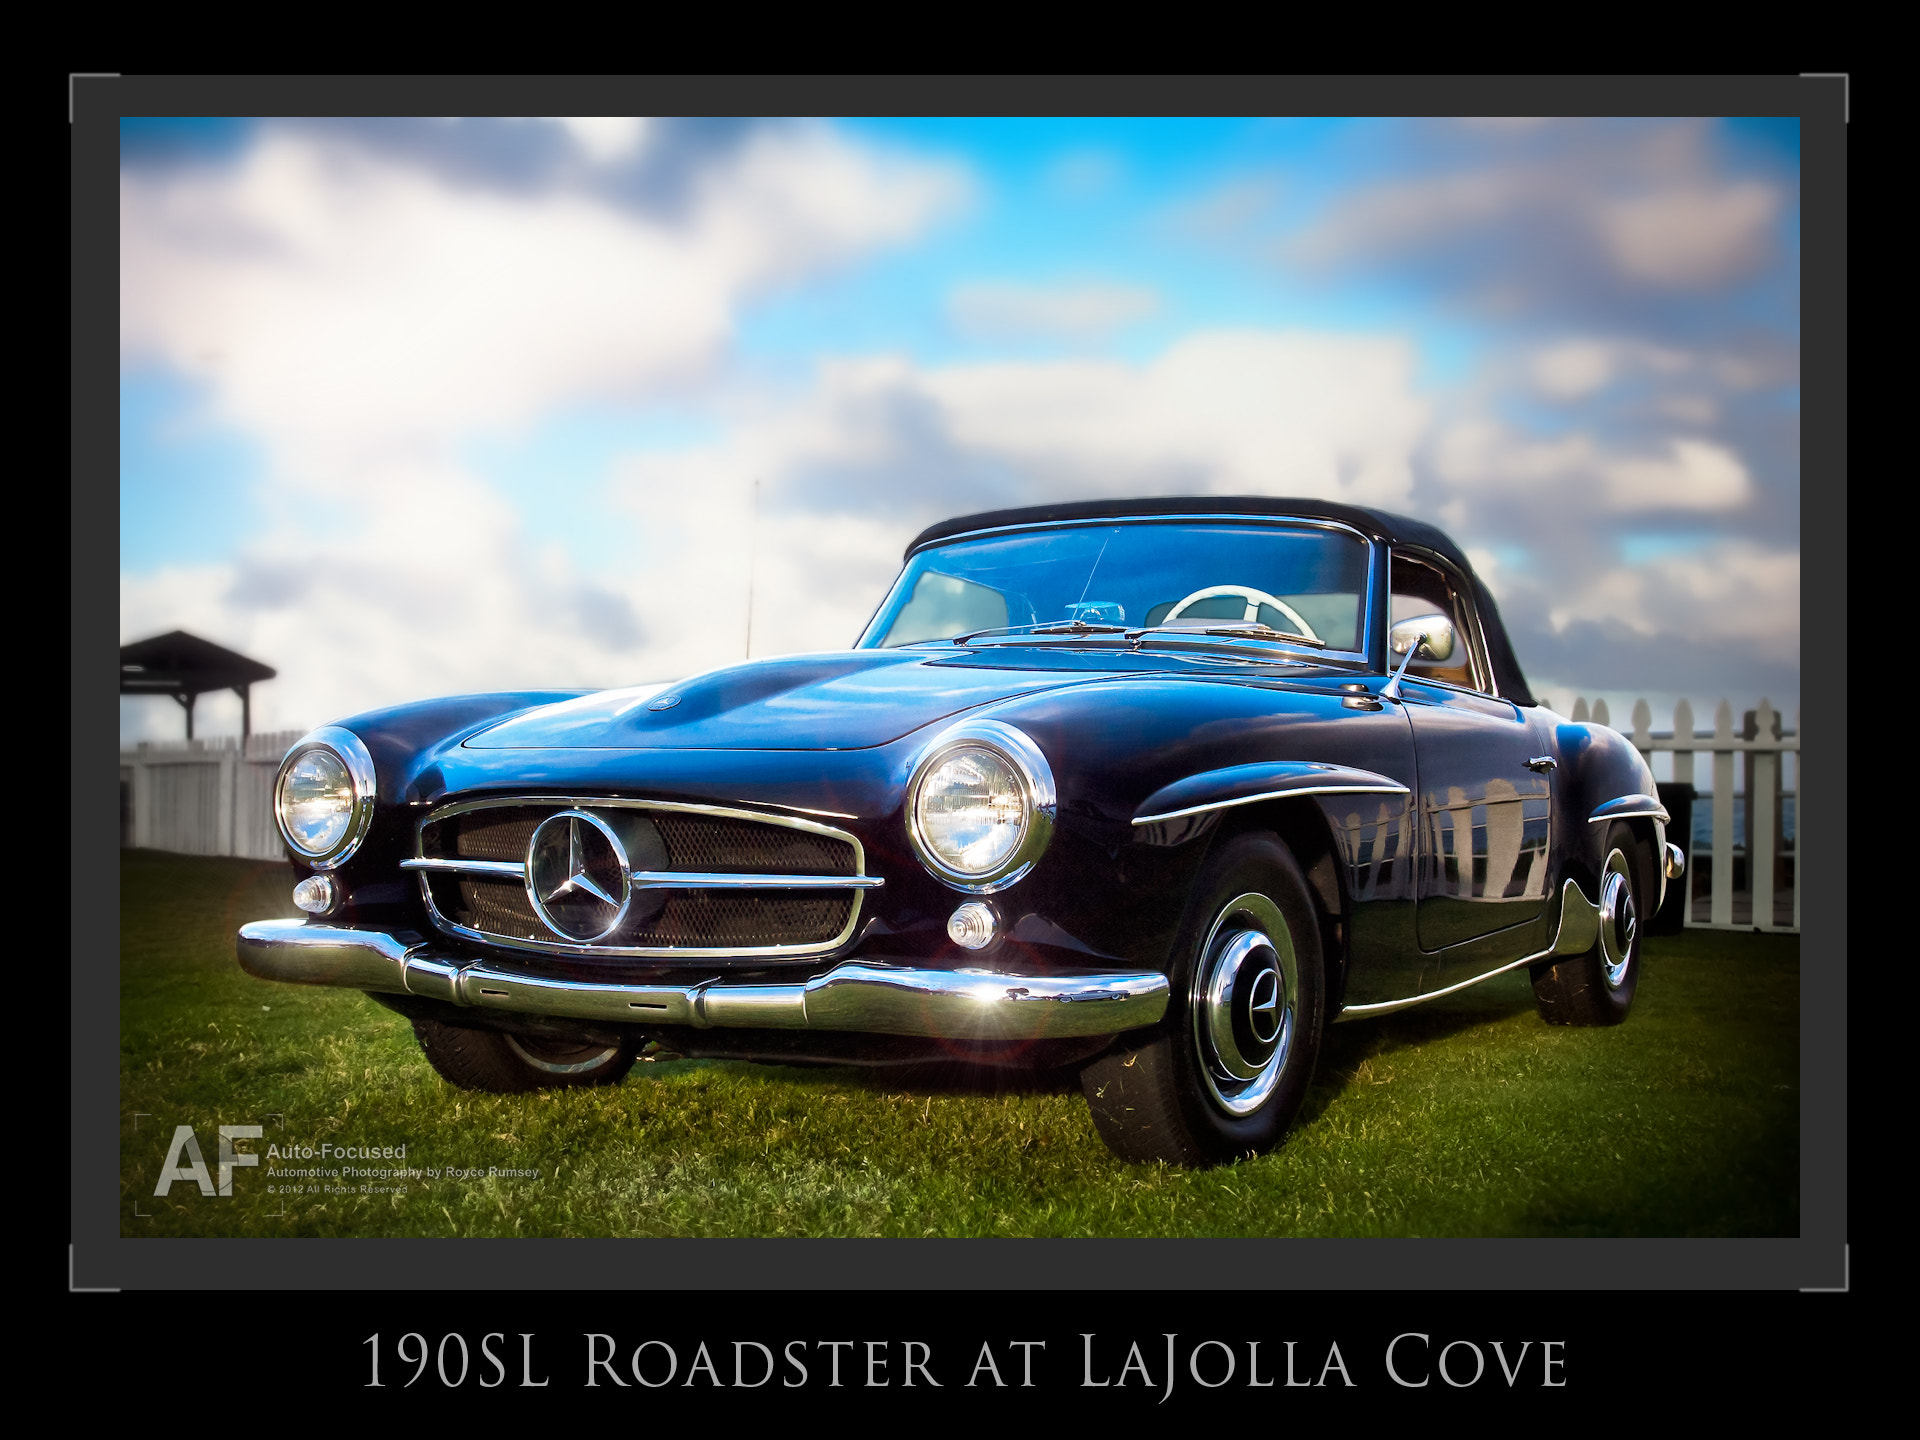 Photograph Morning Sunlight on a 190SL at La Jolla Cove by Royce Rumsey on 500px